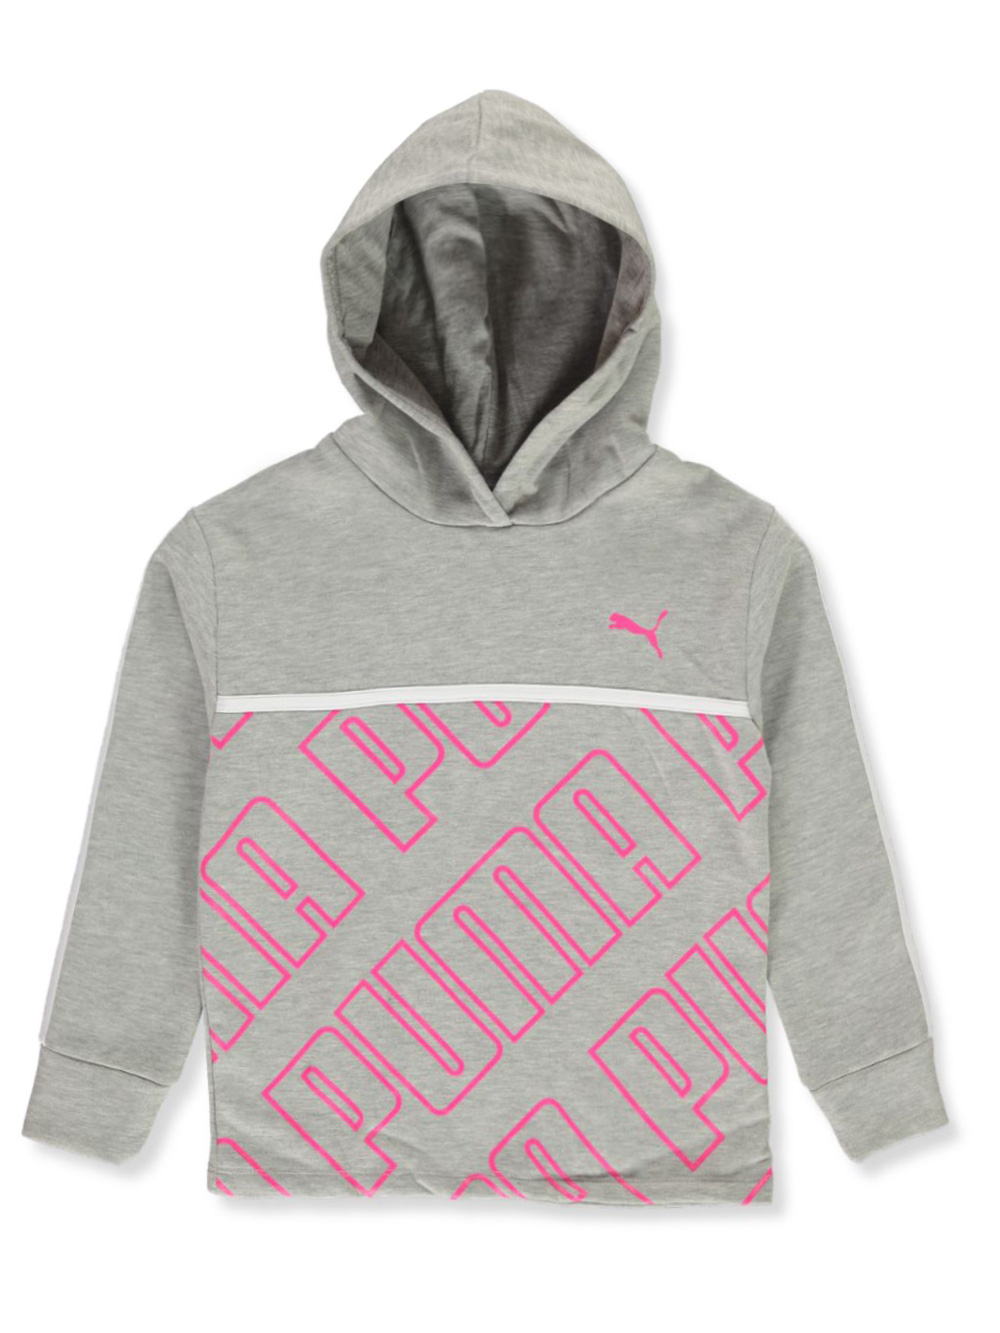 Girls Charcoal Gray Hoodies